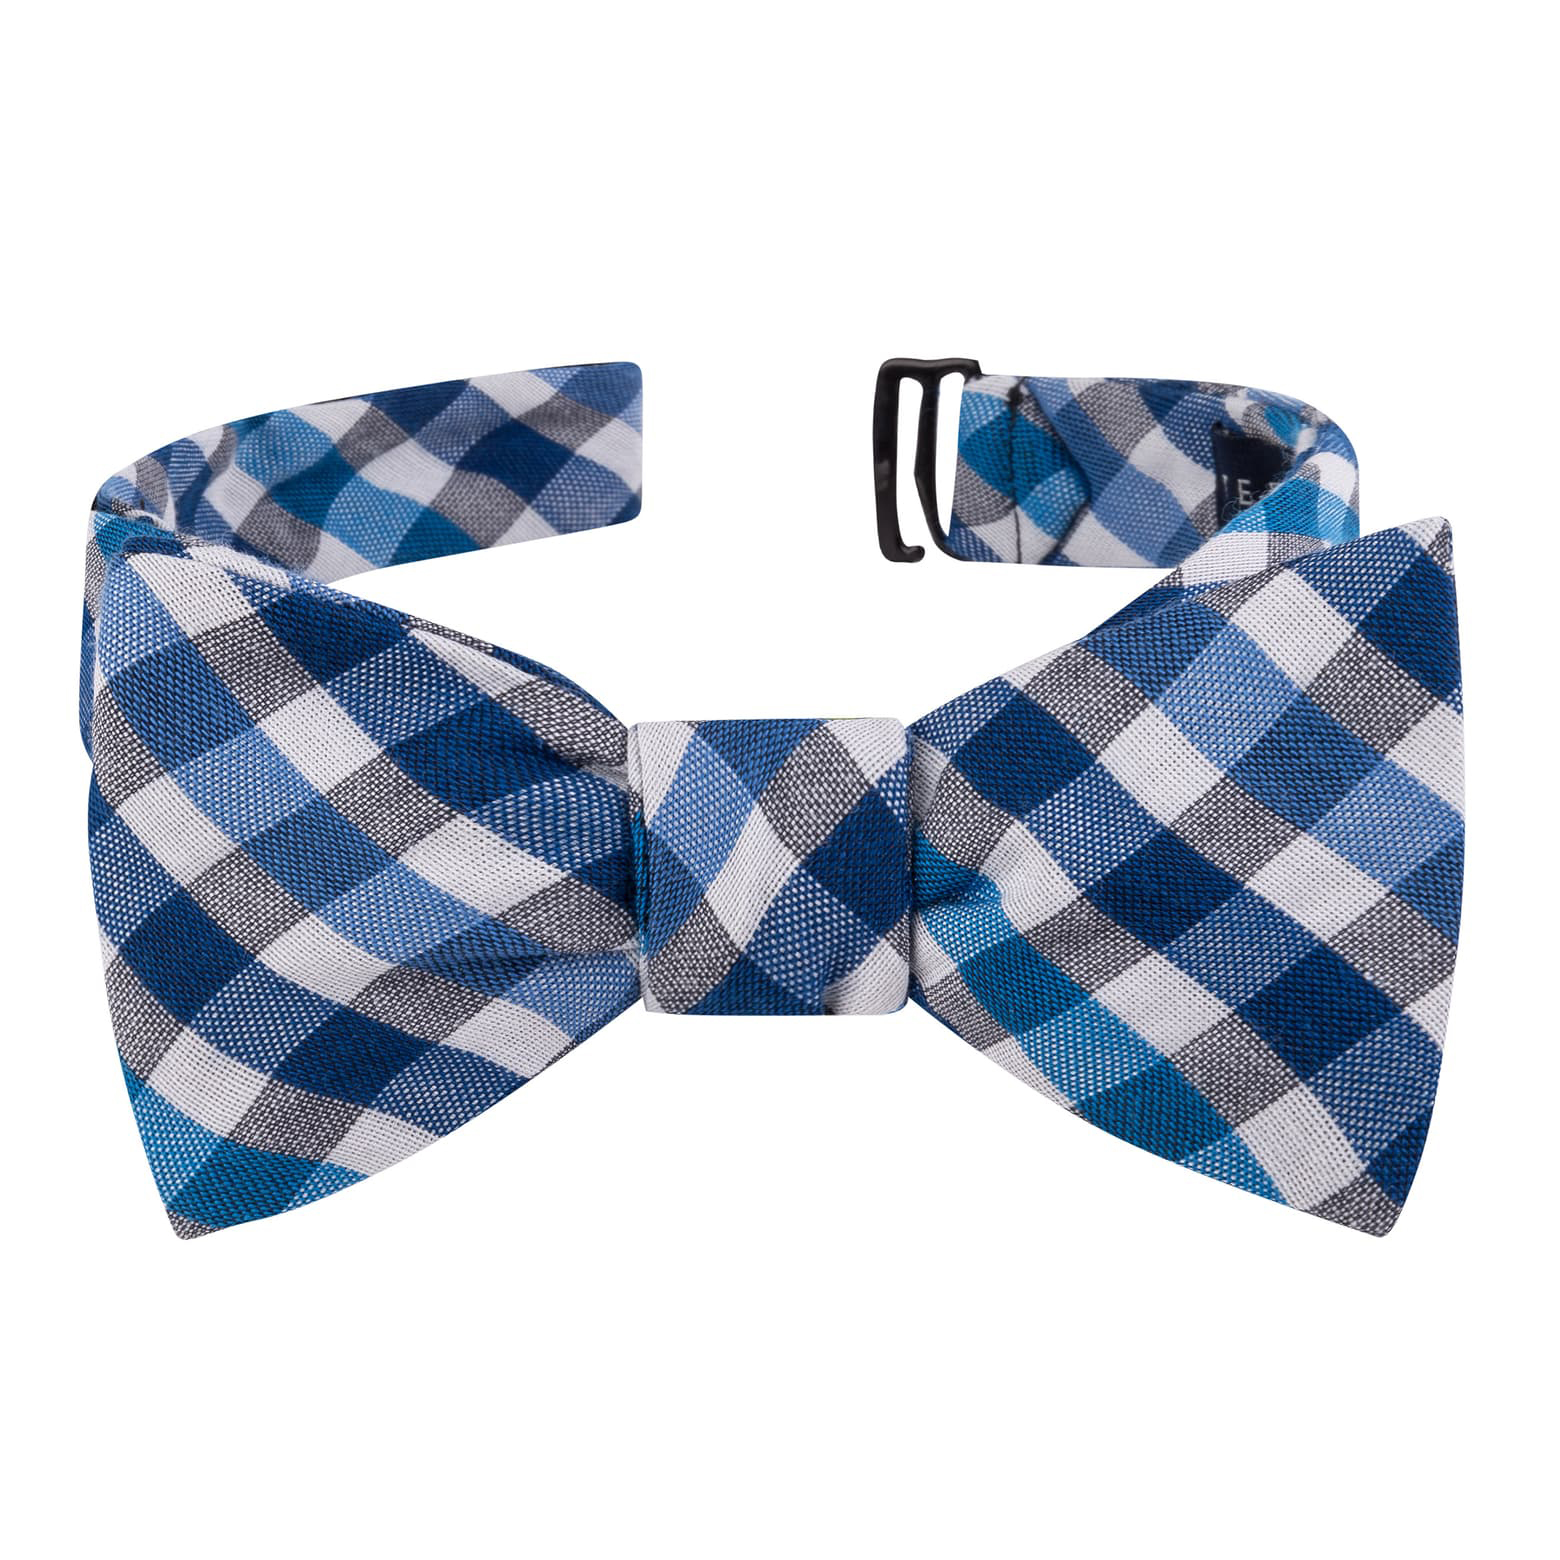 Ted Baker London Check Cotton & Silk Bow Tie nordstrom photo